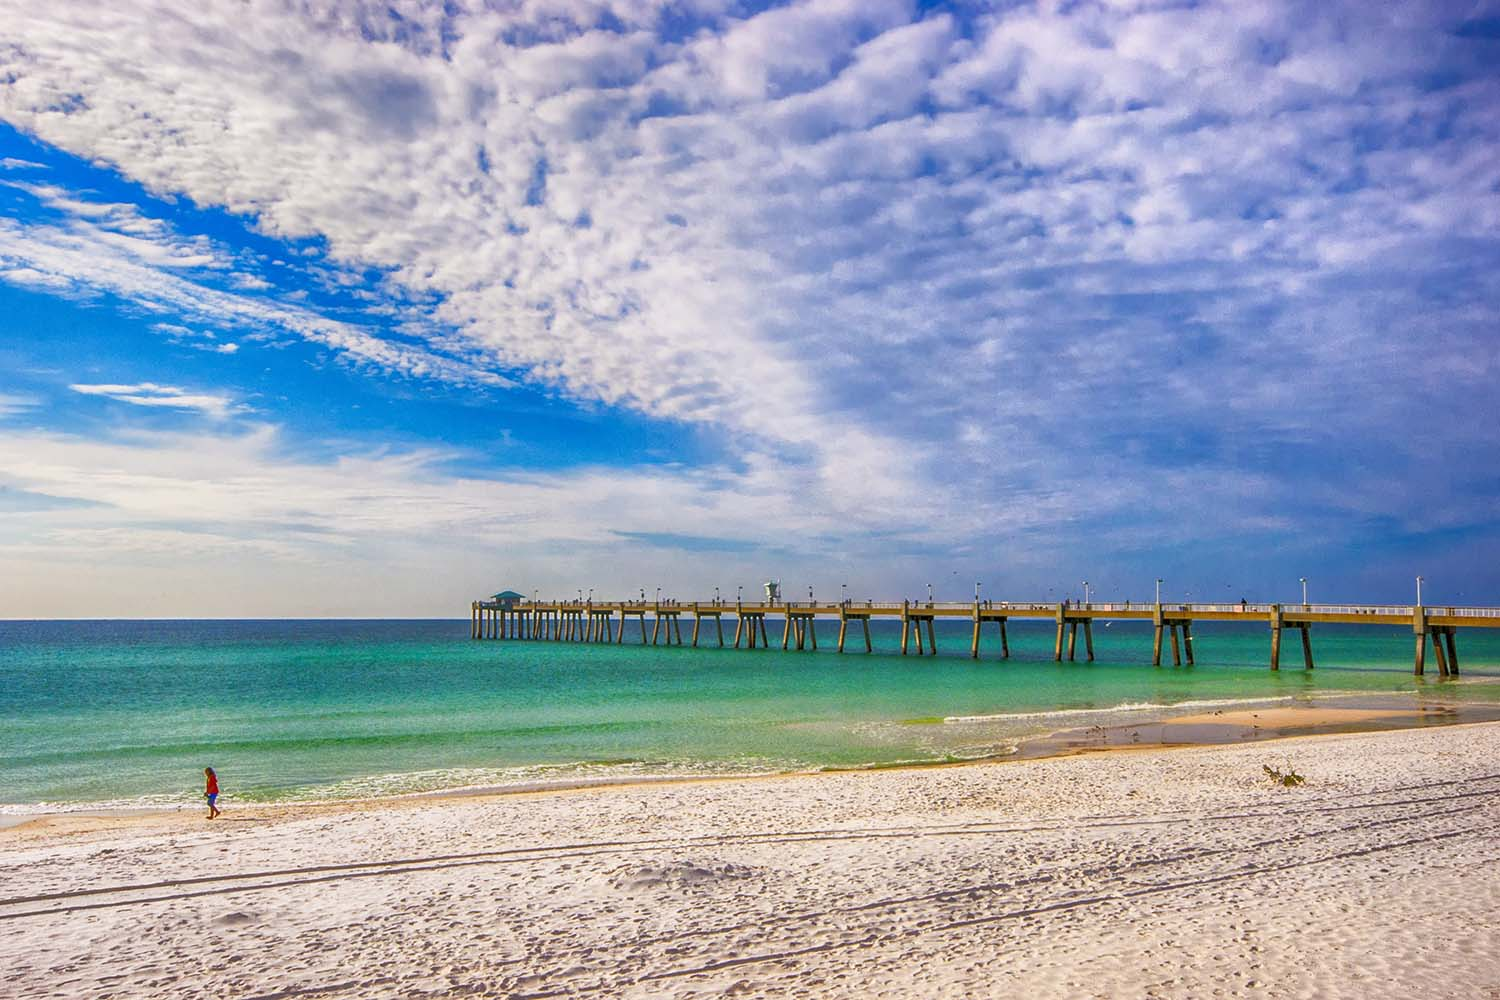 A pier stretches into emerald waters from a white-sand beach.